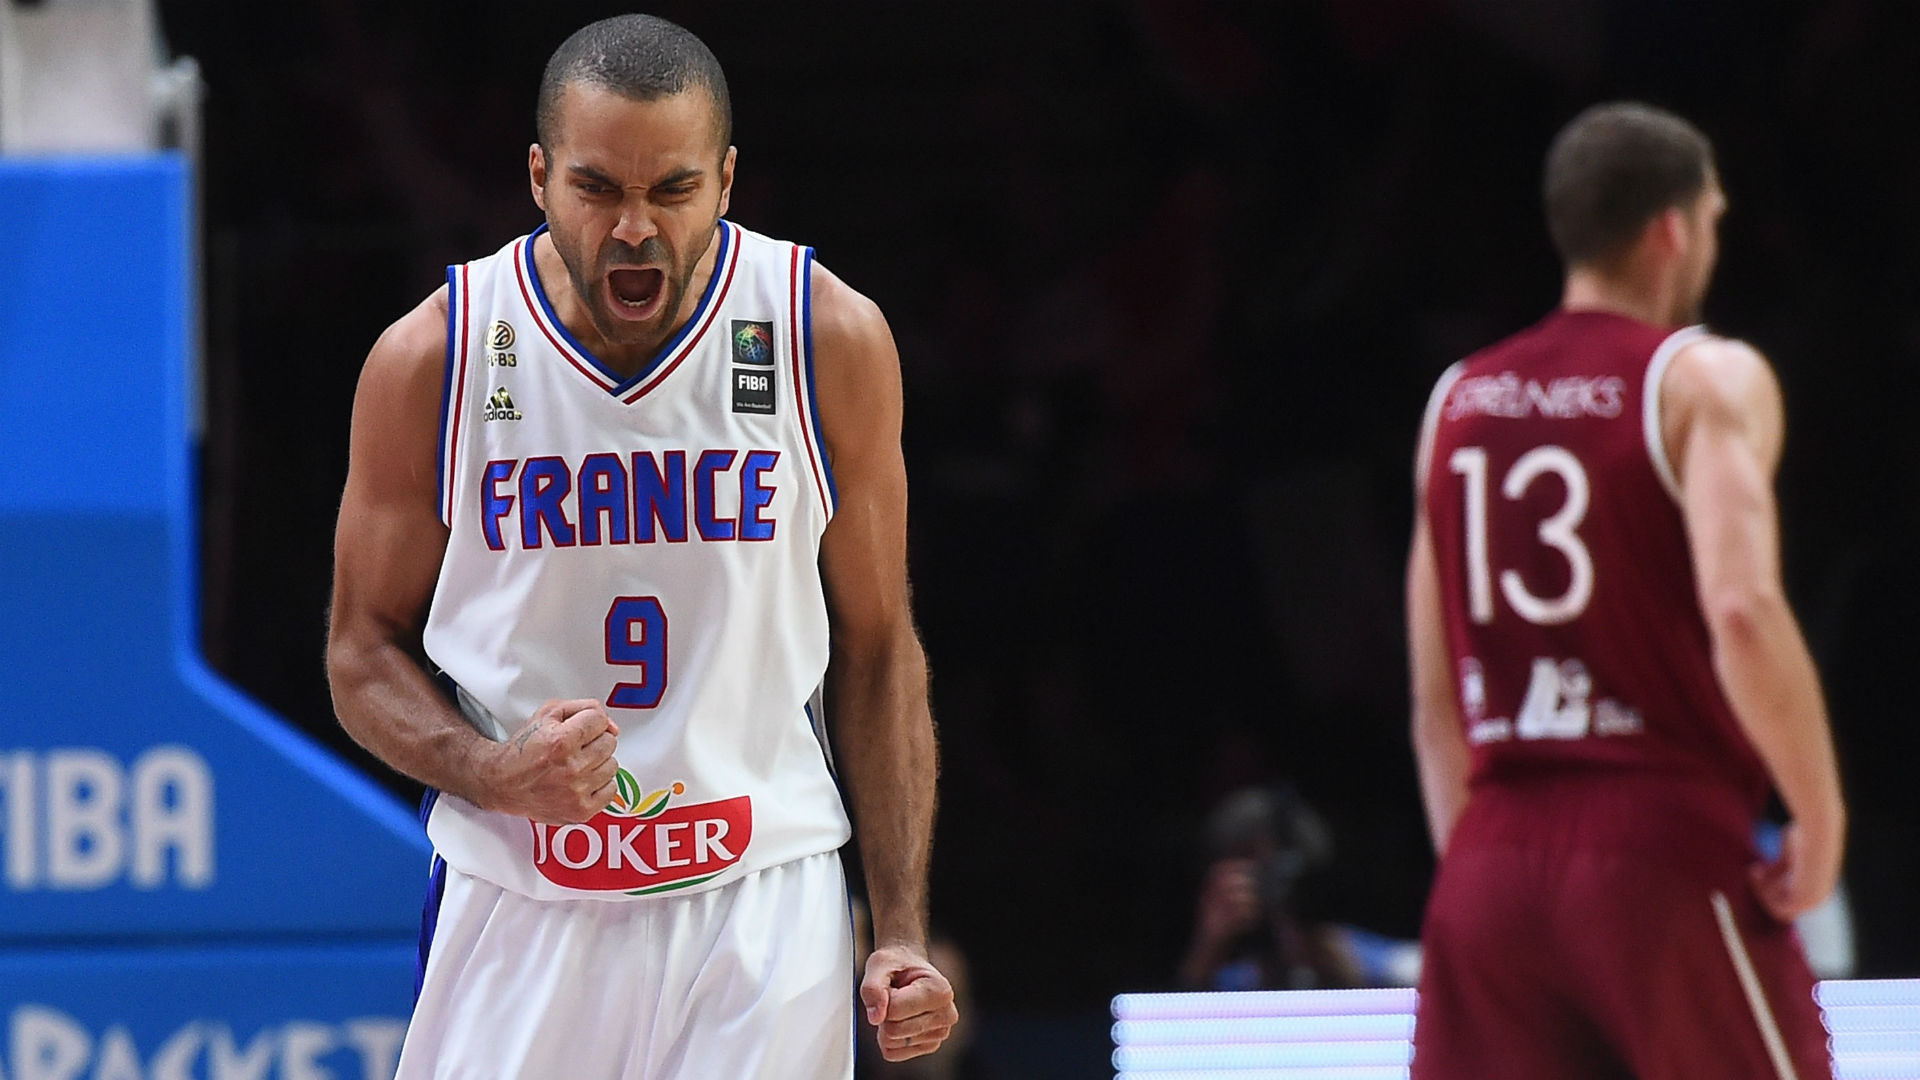 Tony Parker - French basketball player 37